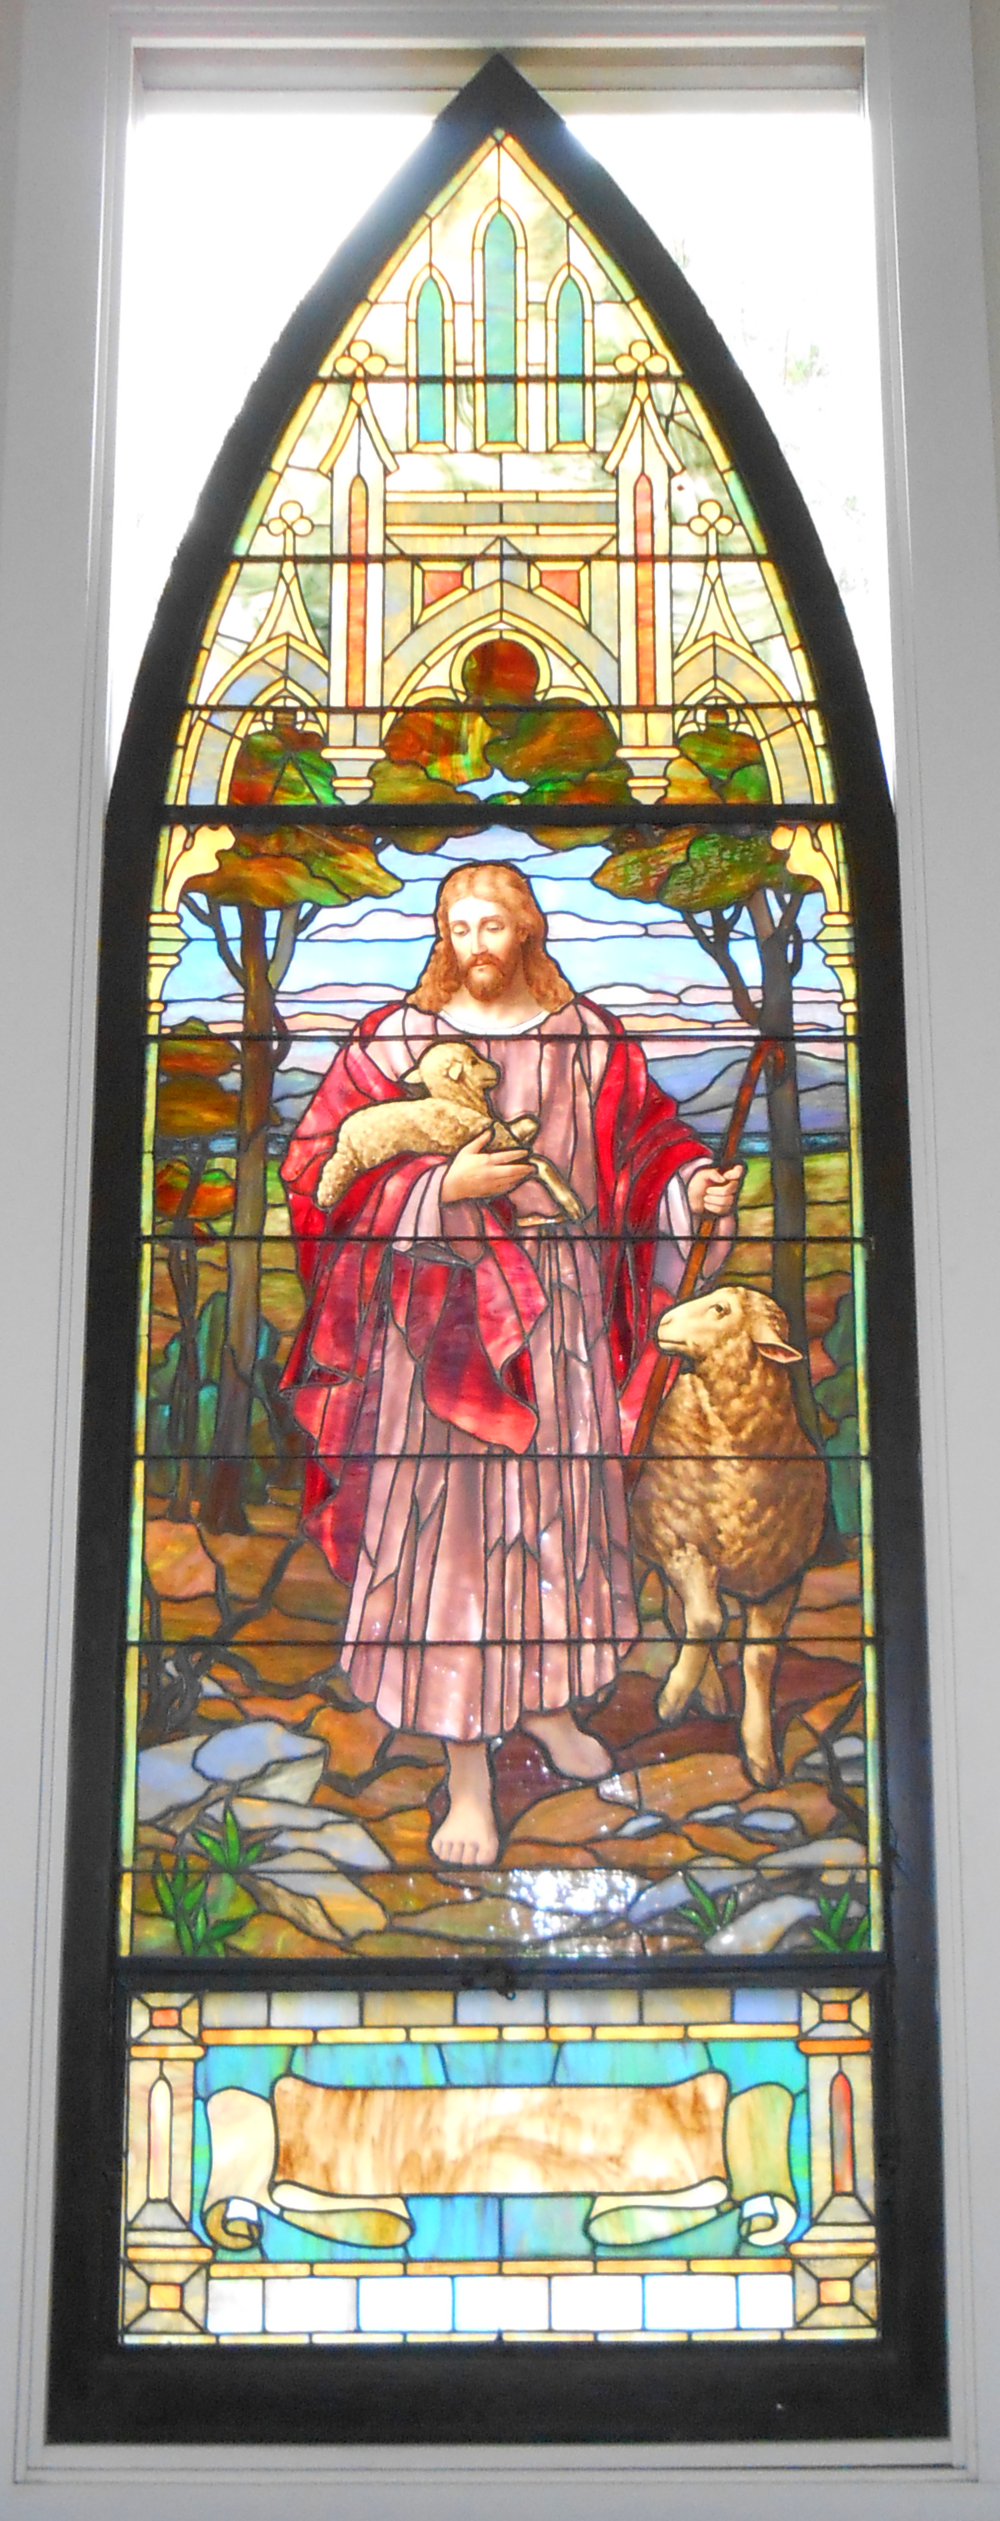 The Good Shepherd window is the largest window we received from Capitol Street United Methodist Church in Jackson.  It is placed in the sanctuary directly behind the altar.